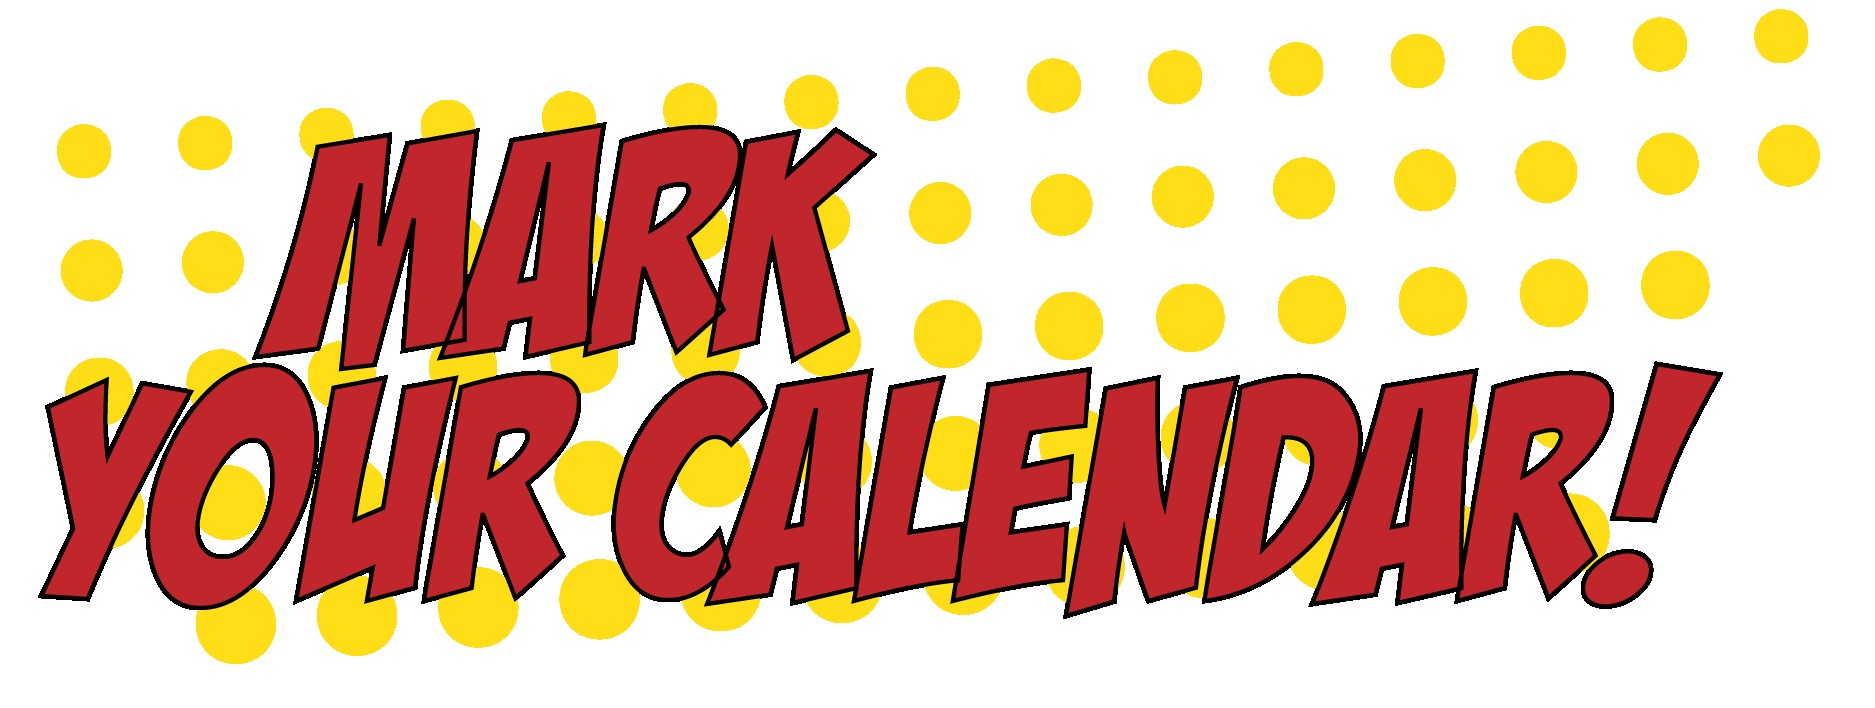 Mark Your Calendar Transparent & PNG Clipart Free Download - YWD